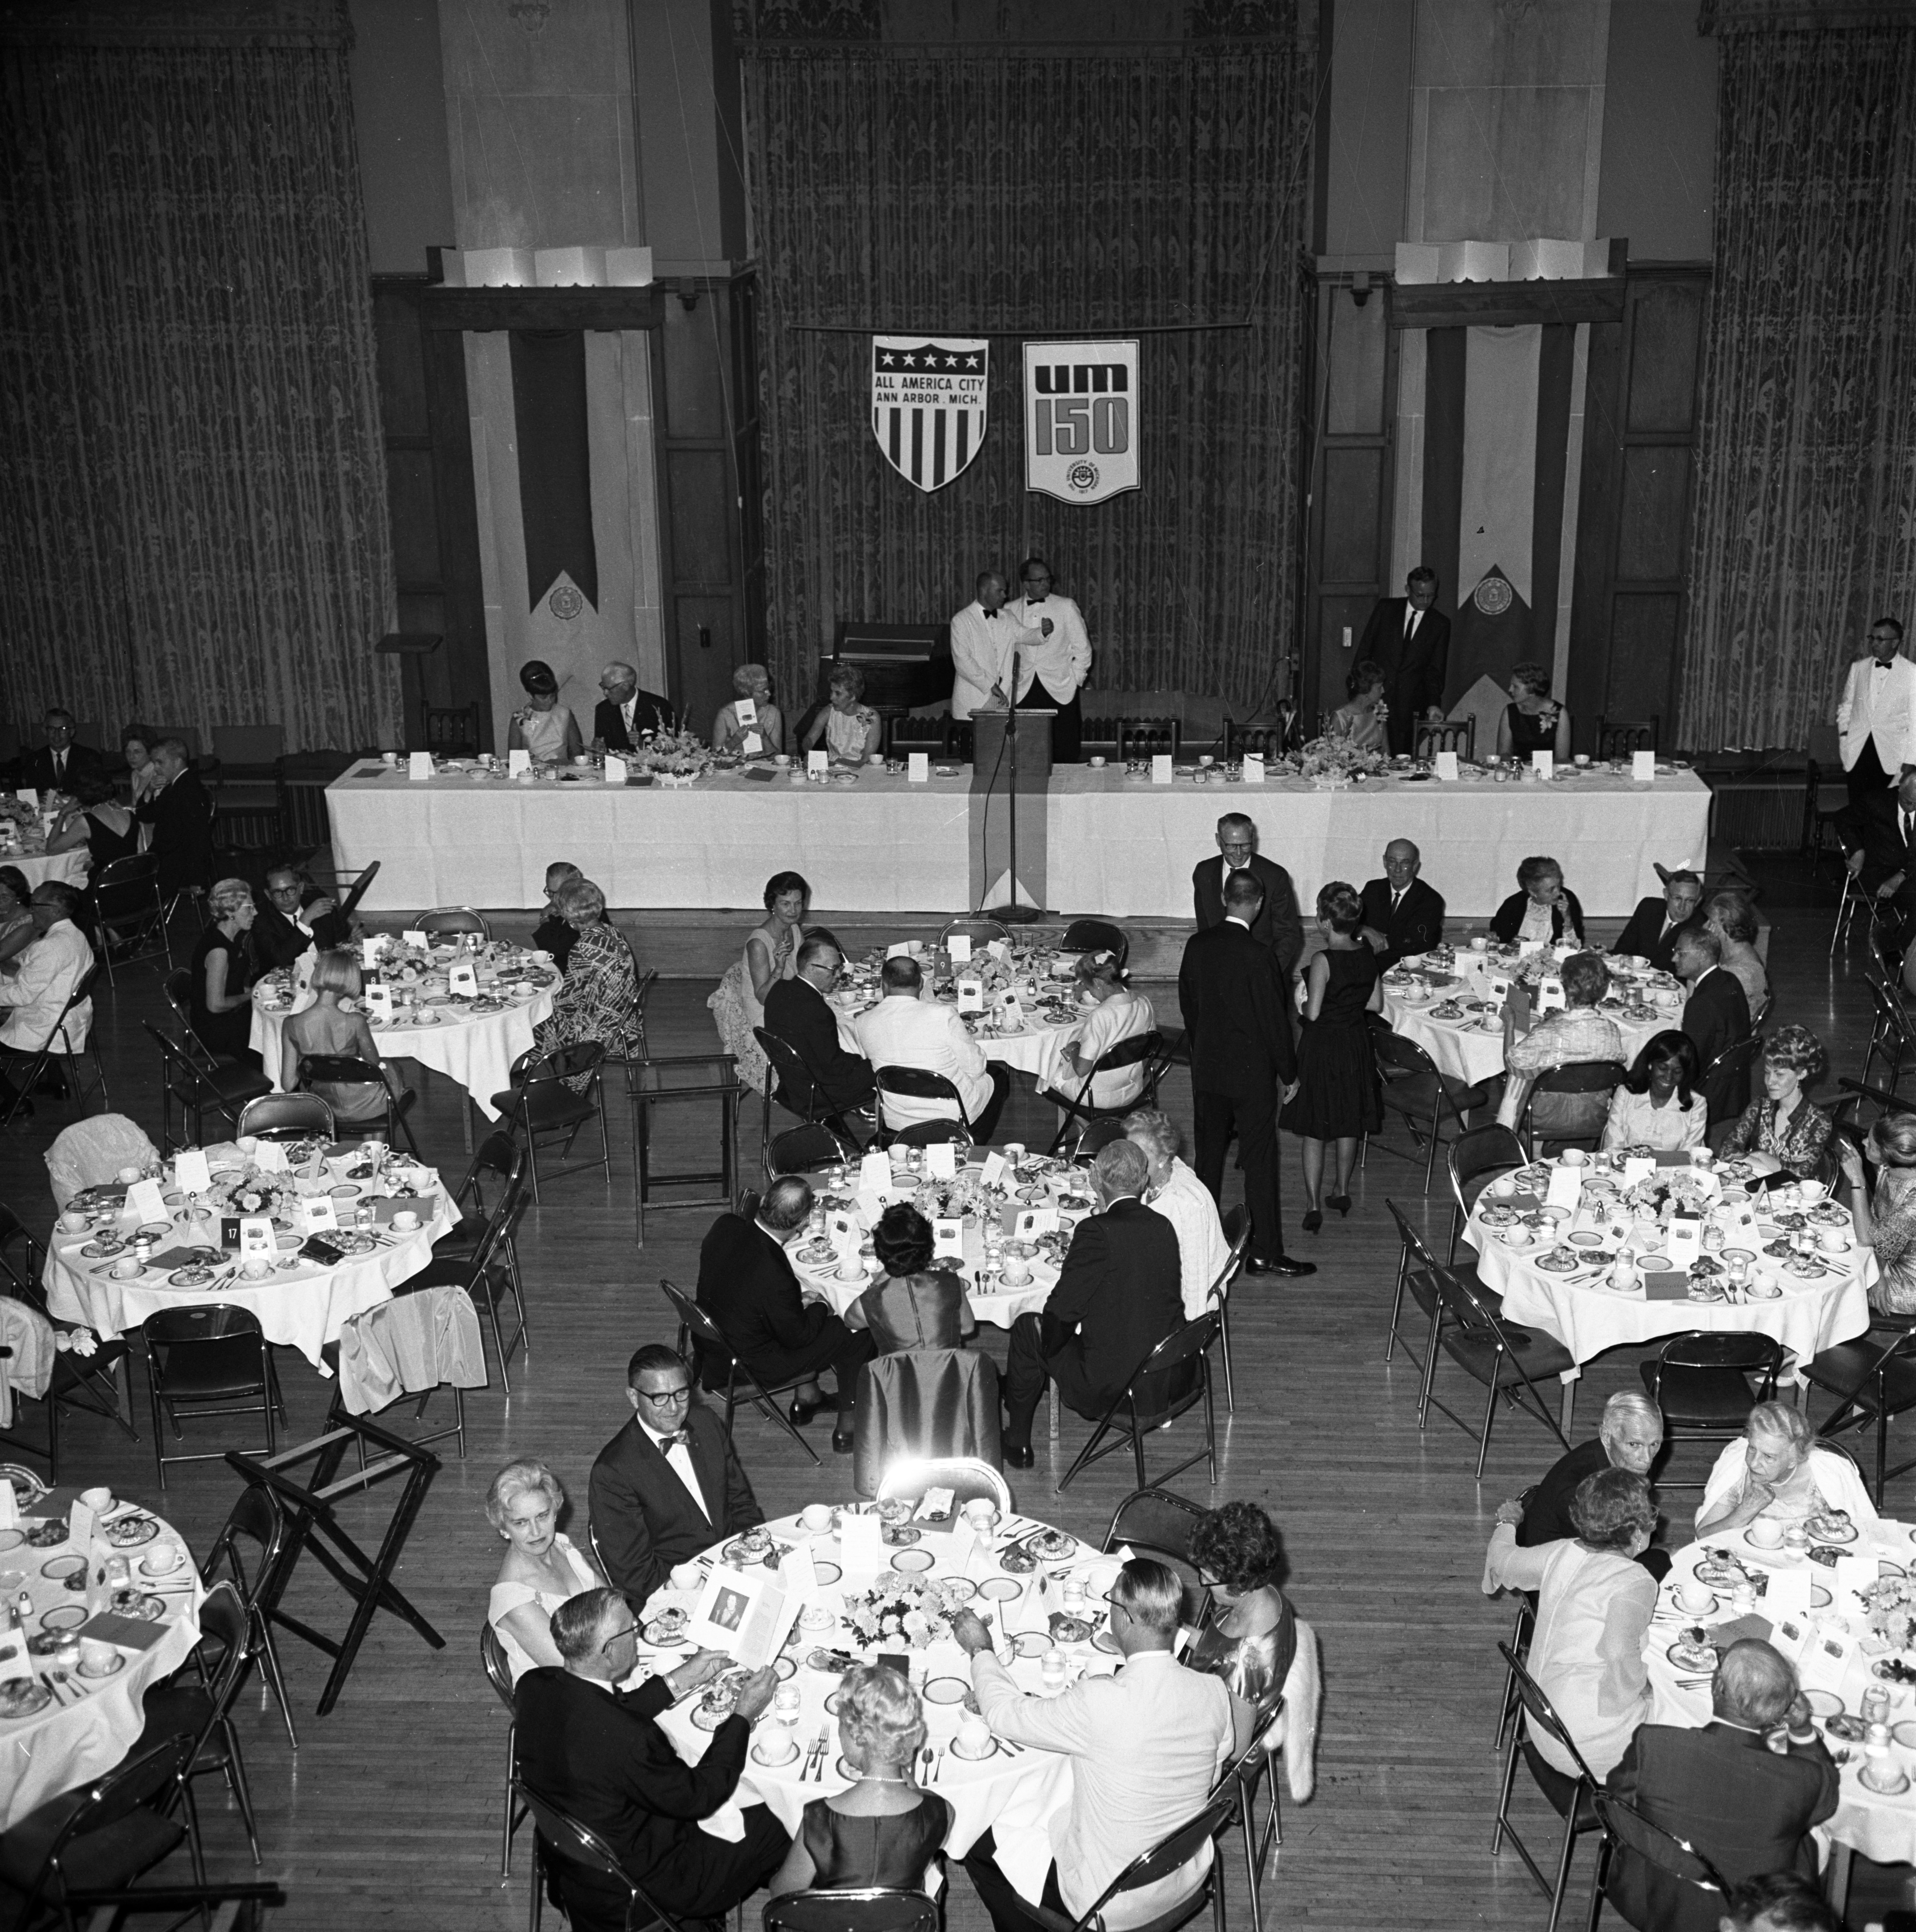 The U-M Sesquicentennial Birthday Gala At The Union Ballroom, August 28, 1967 image